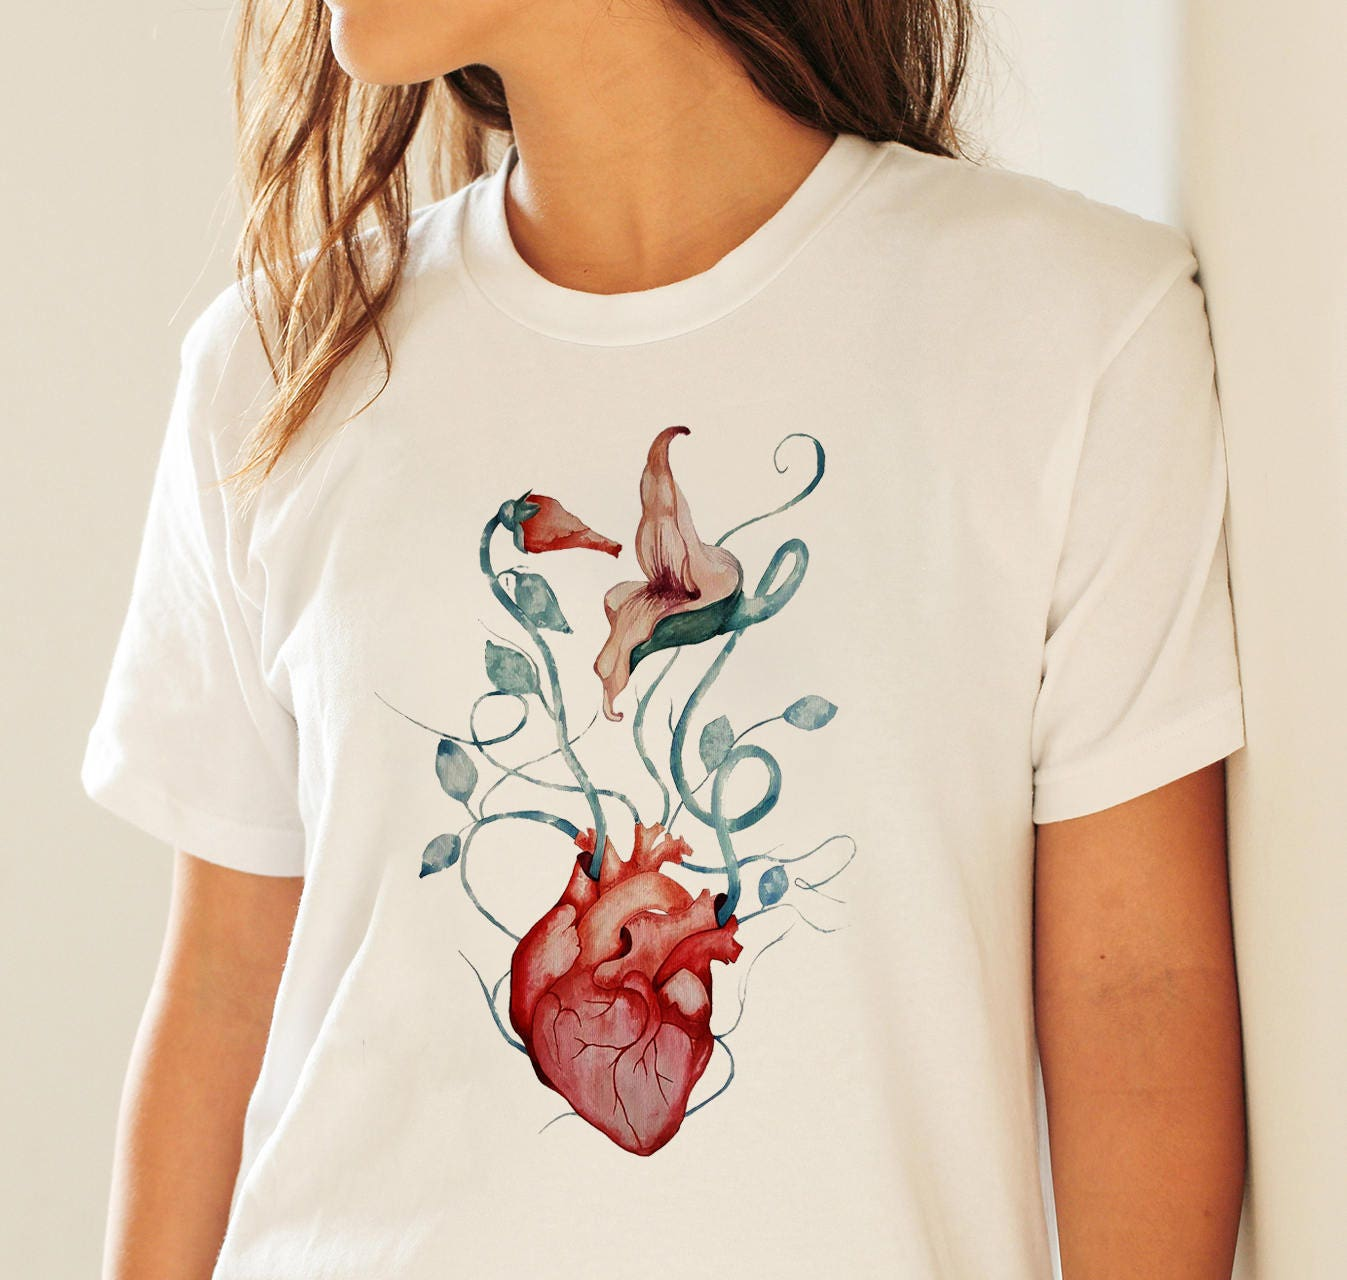 Pink floyd the wall flowers unisex t shirt rock music shirt pink floyd the wall flowers unisex t shirt rock music shirt anatomical heart psychedelic art graphic tee zuskaart mightylinksfo